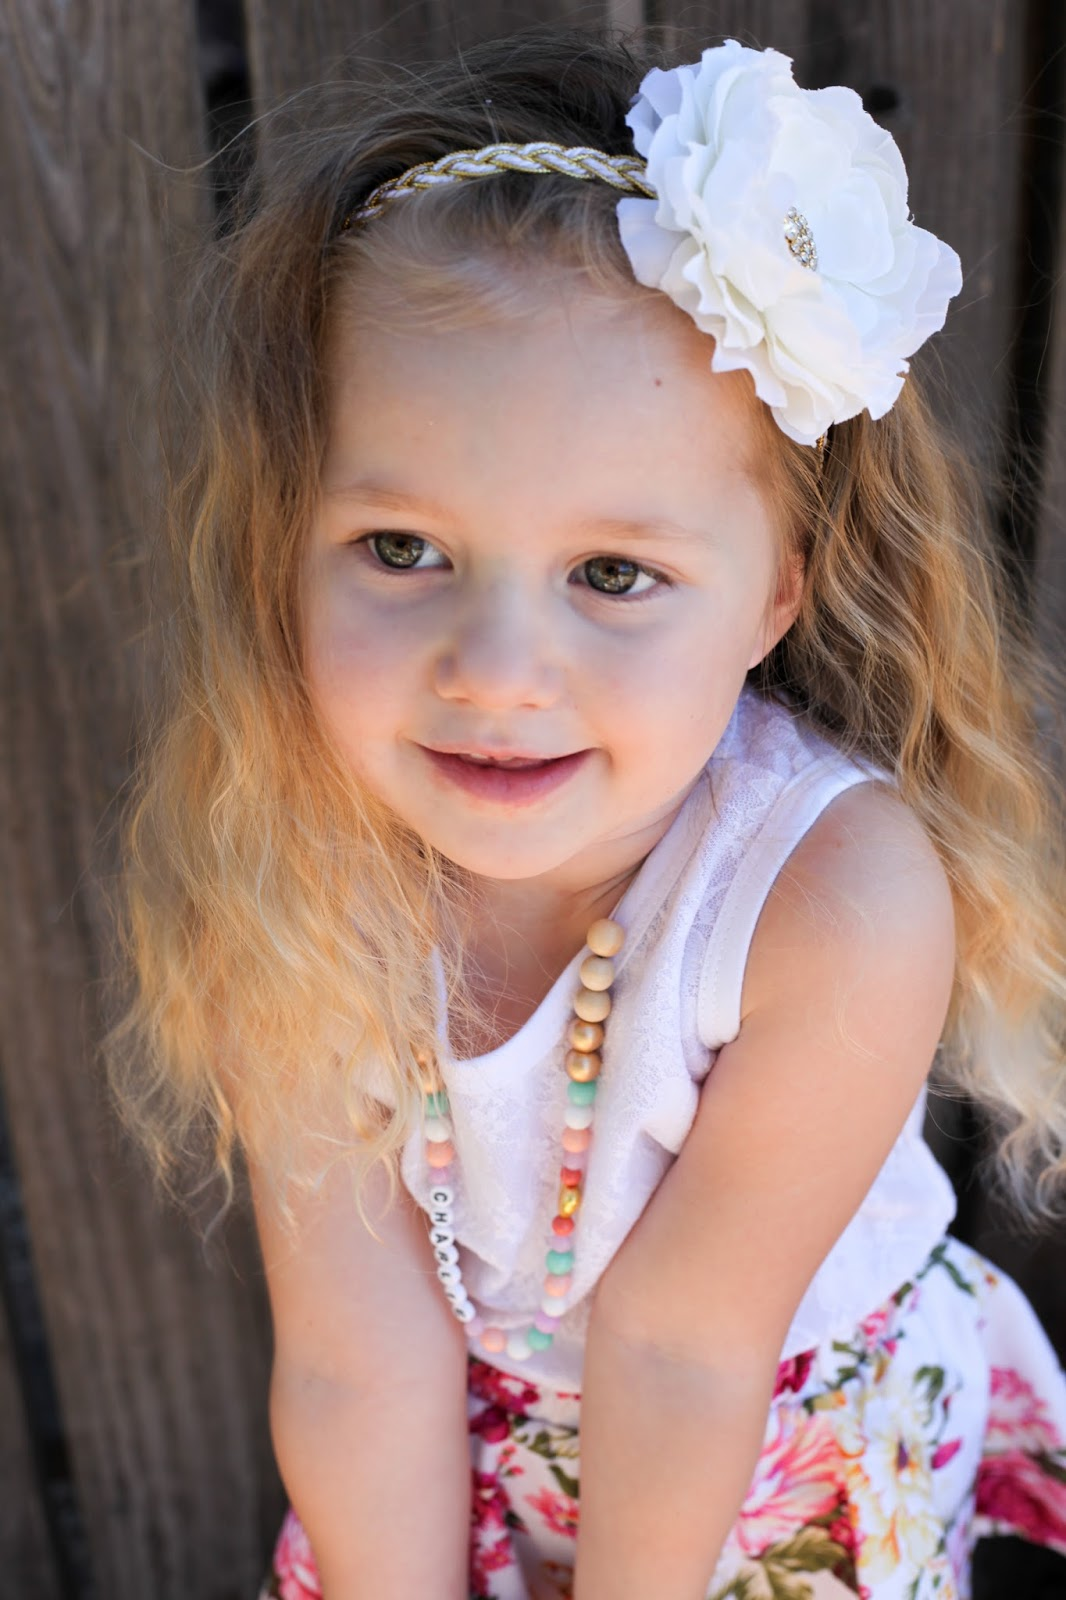 The Day After French Braids Is A Great Time To Have Your Little One Wear  Their Hair Down Or With A Simple Headband If You Want The Hair To Have  More Volume